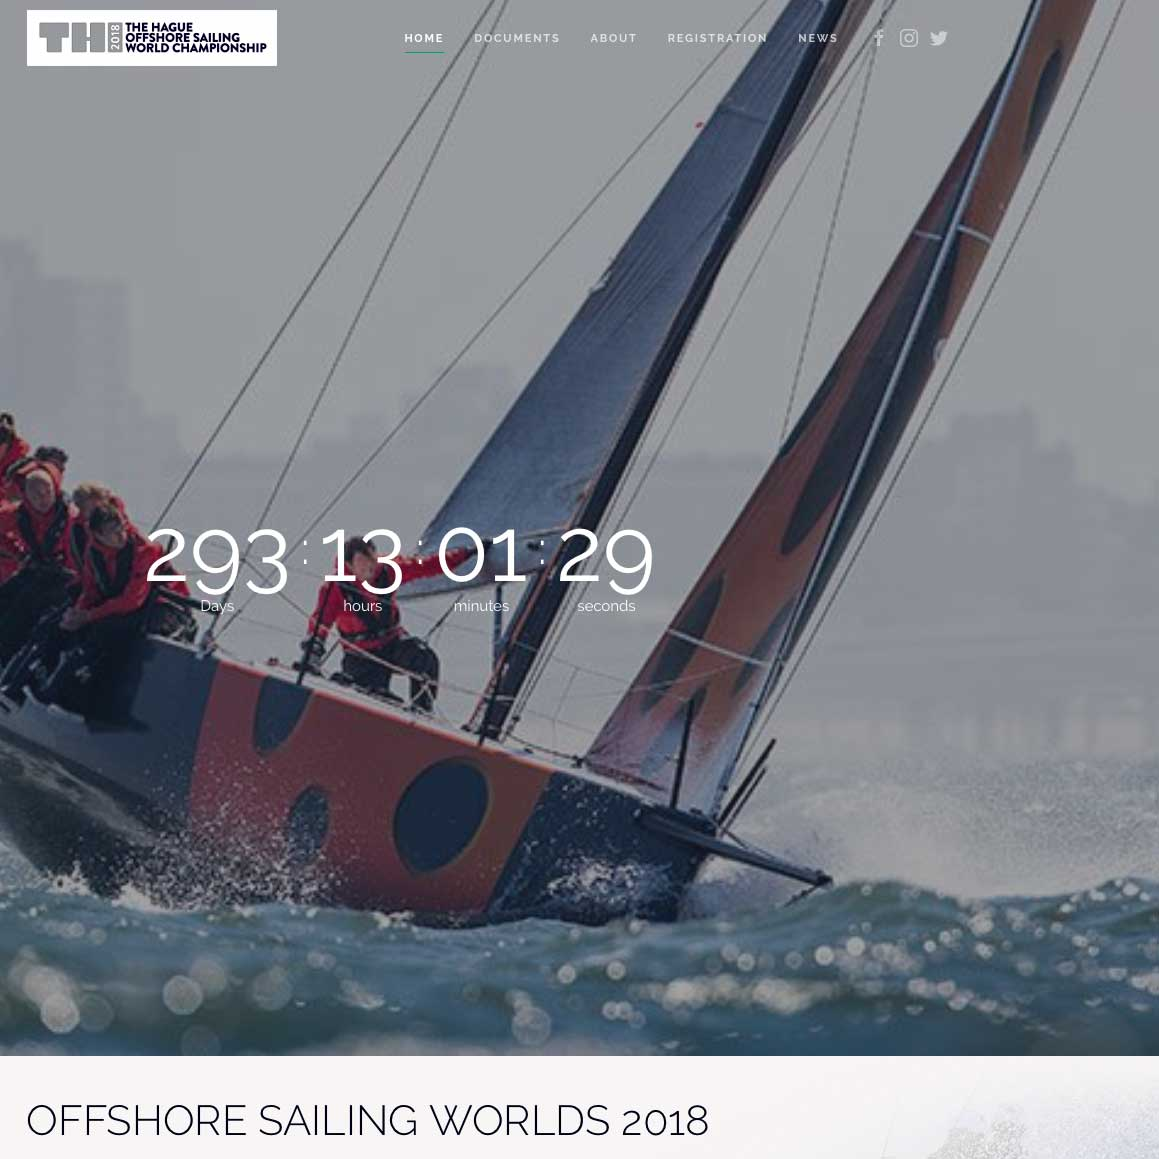 Offshore Sailing Worlds 2018 | planering?